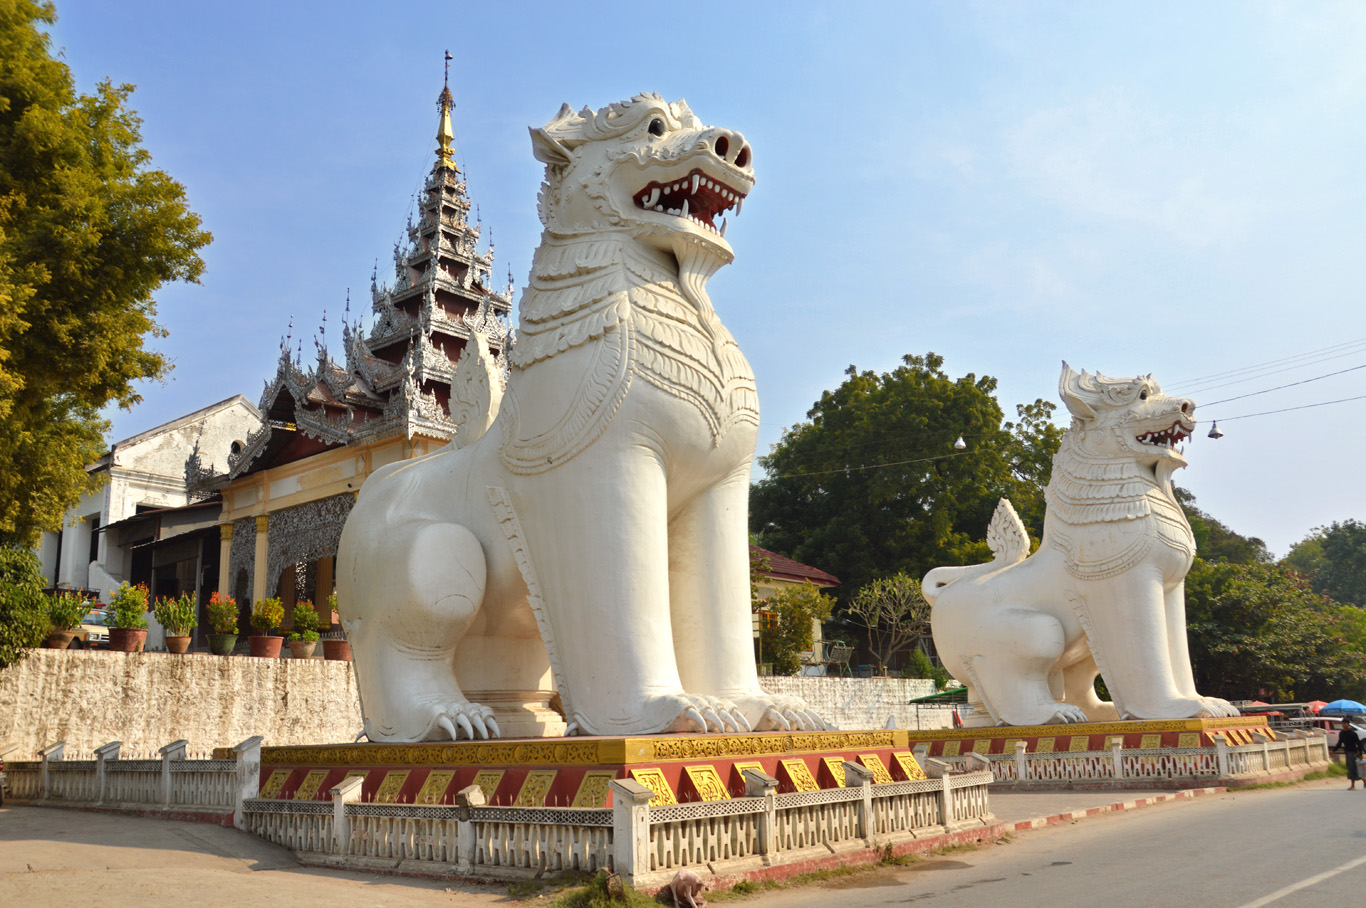 The gate to Mandalay Hill